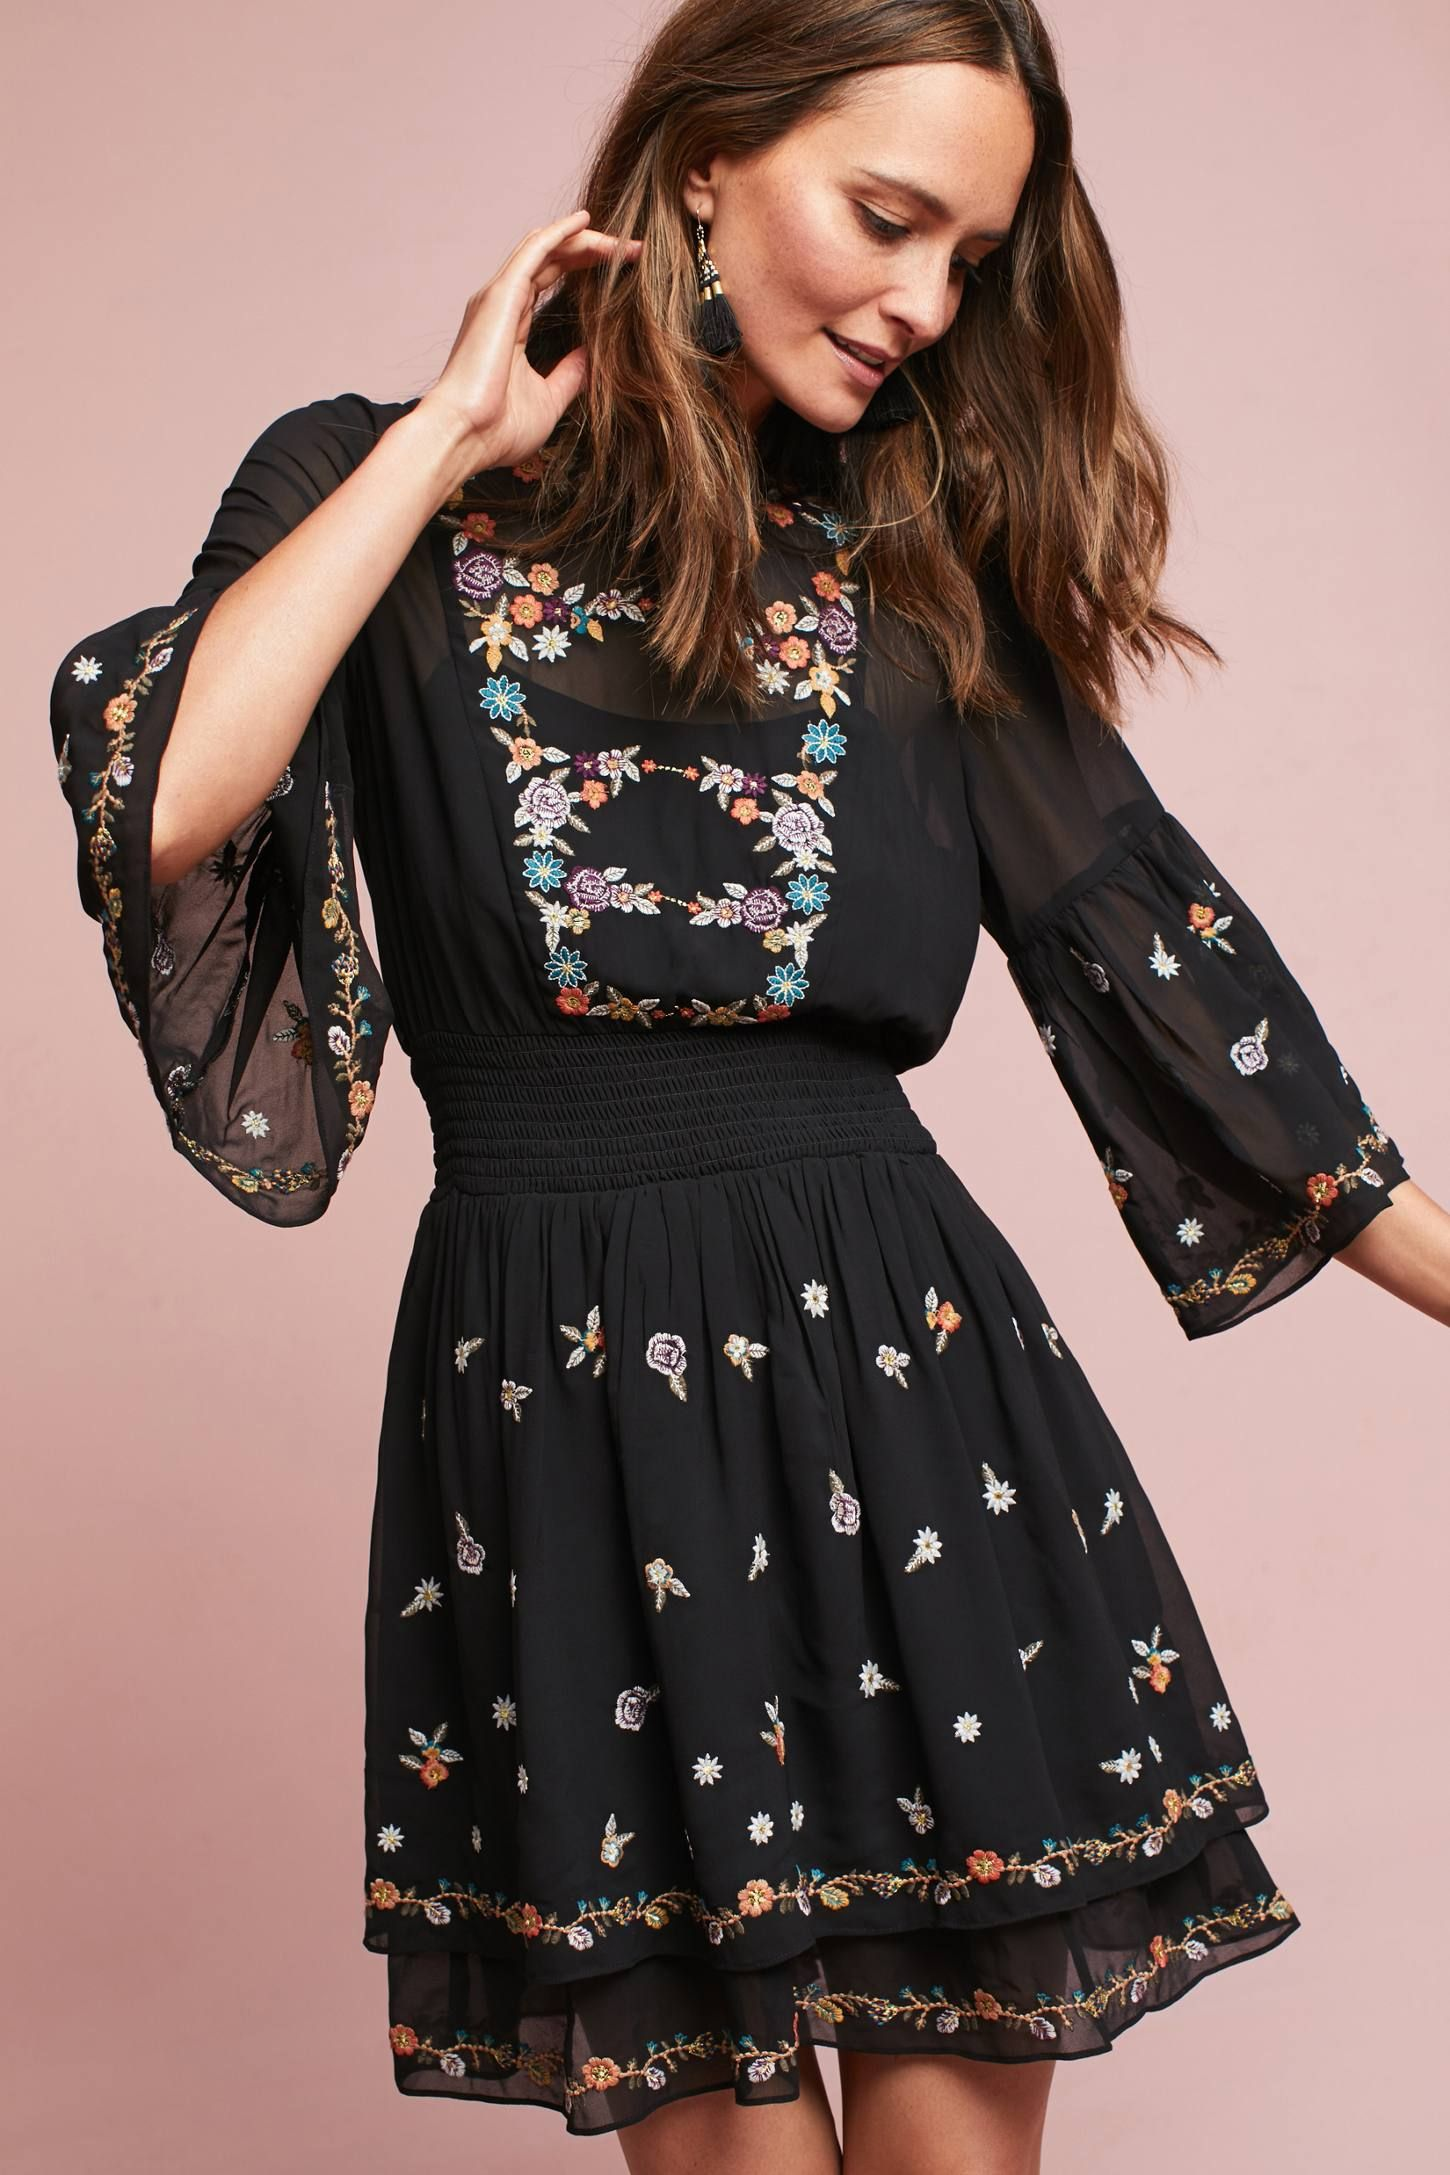 Anfisa tunic dress tunics anthropologie and shopping